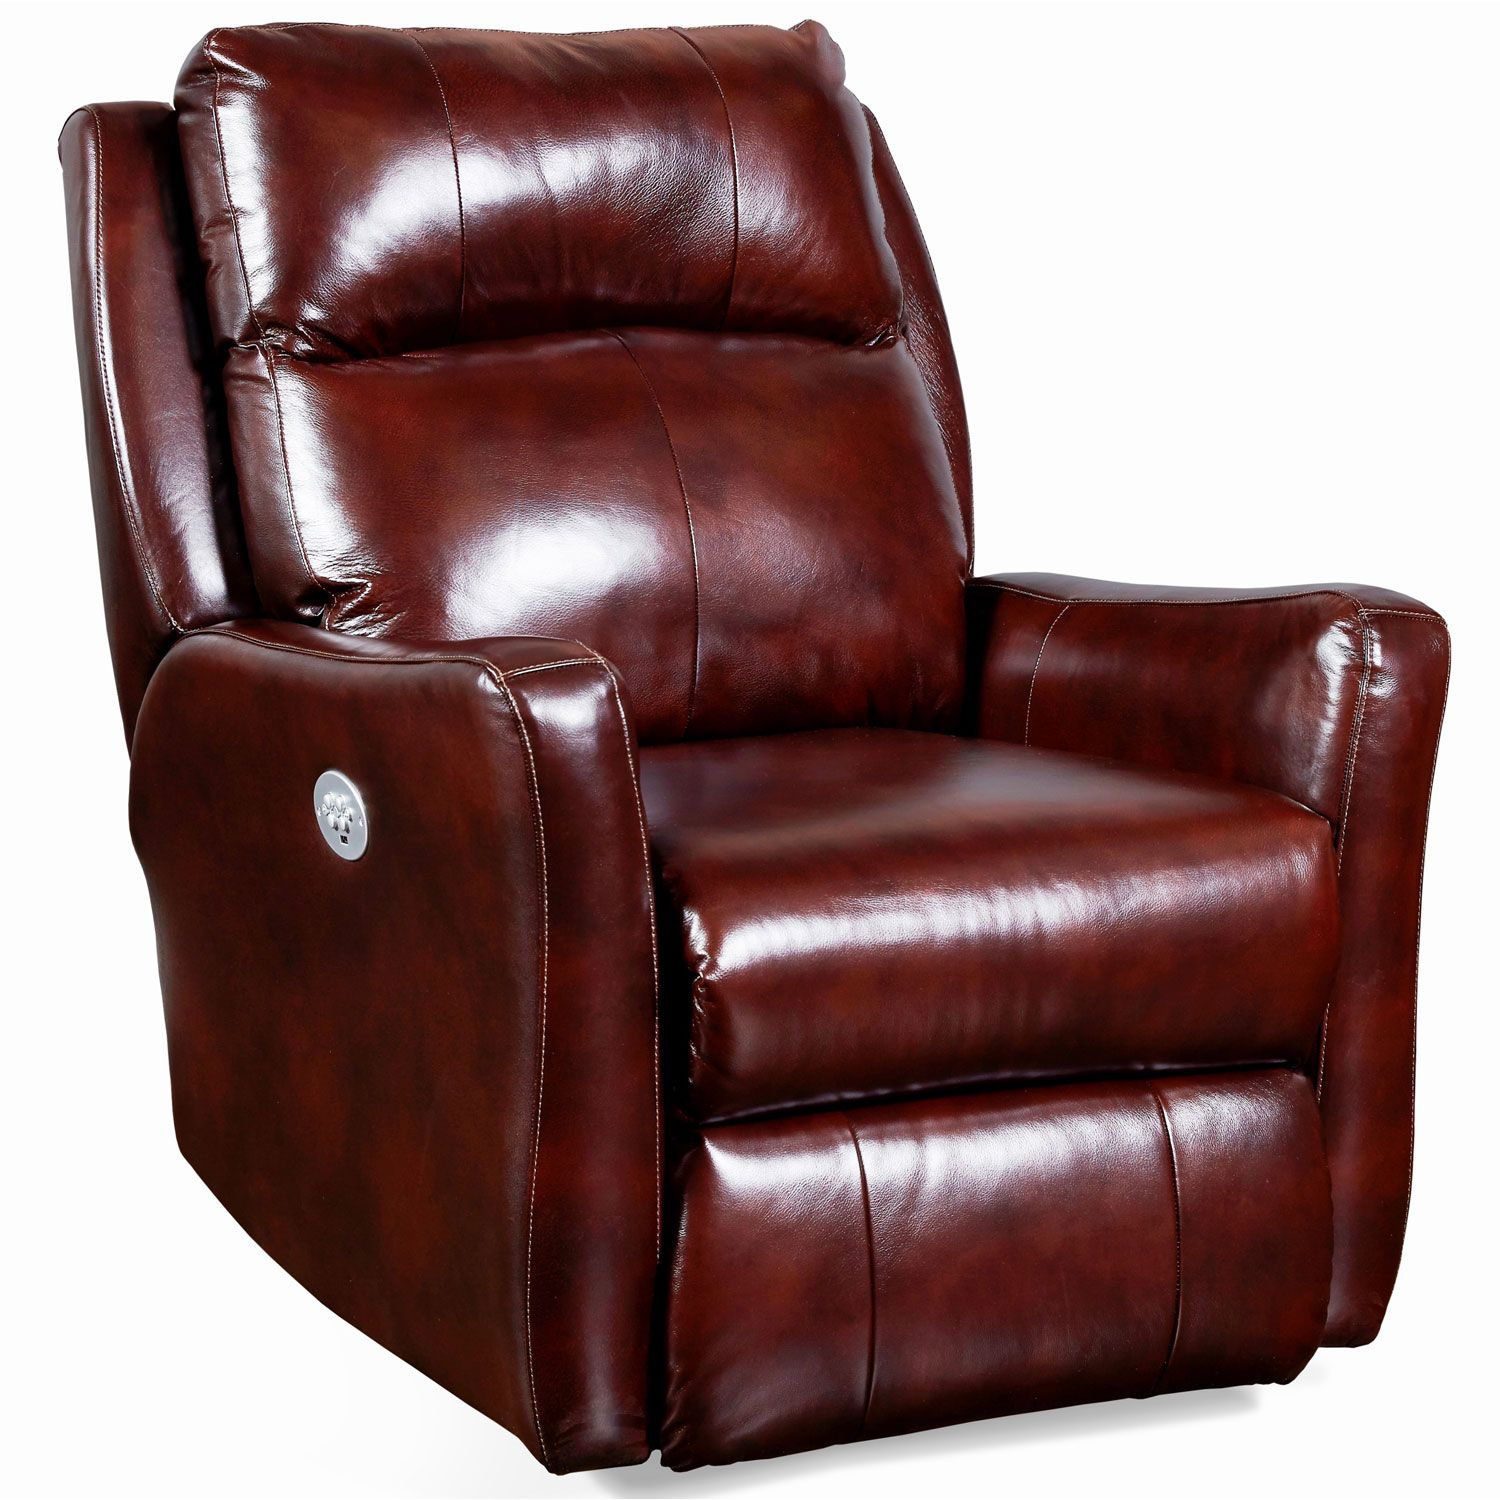 Southern Motion 6313p 906 23 Top Notch Power Headrest Wall Hugger Recliner Brown Leather Wall Hugger Recliners Southern Motion Recliner